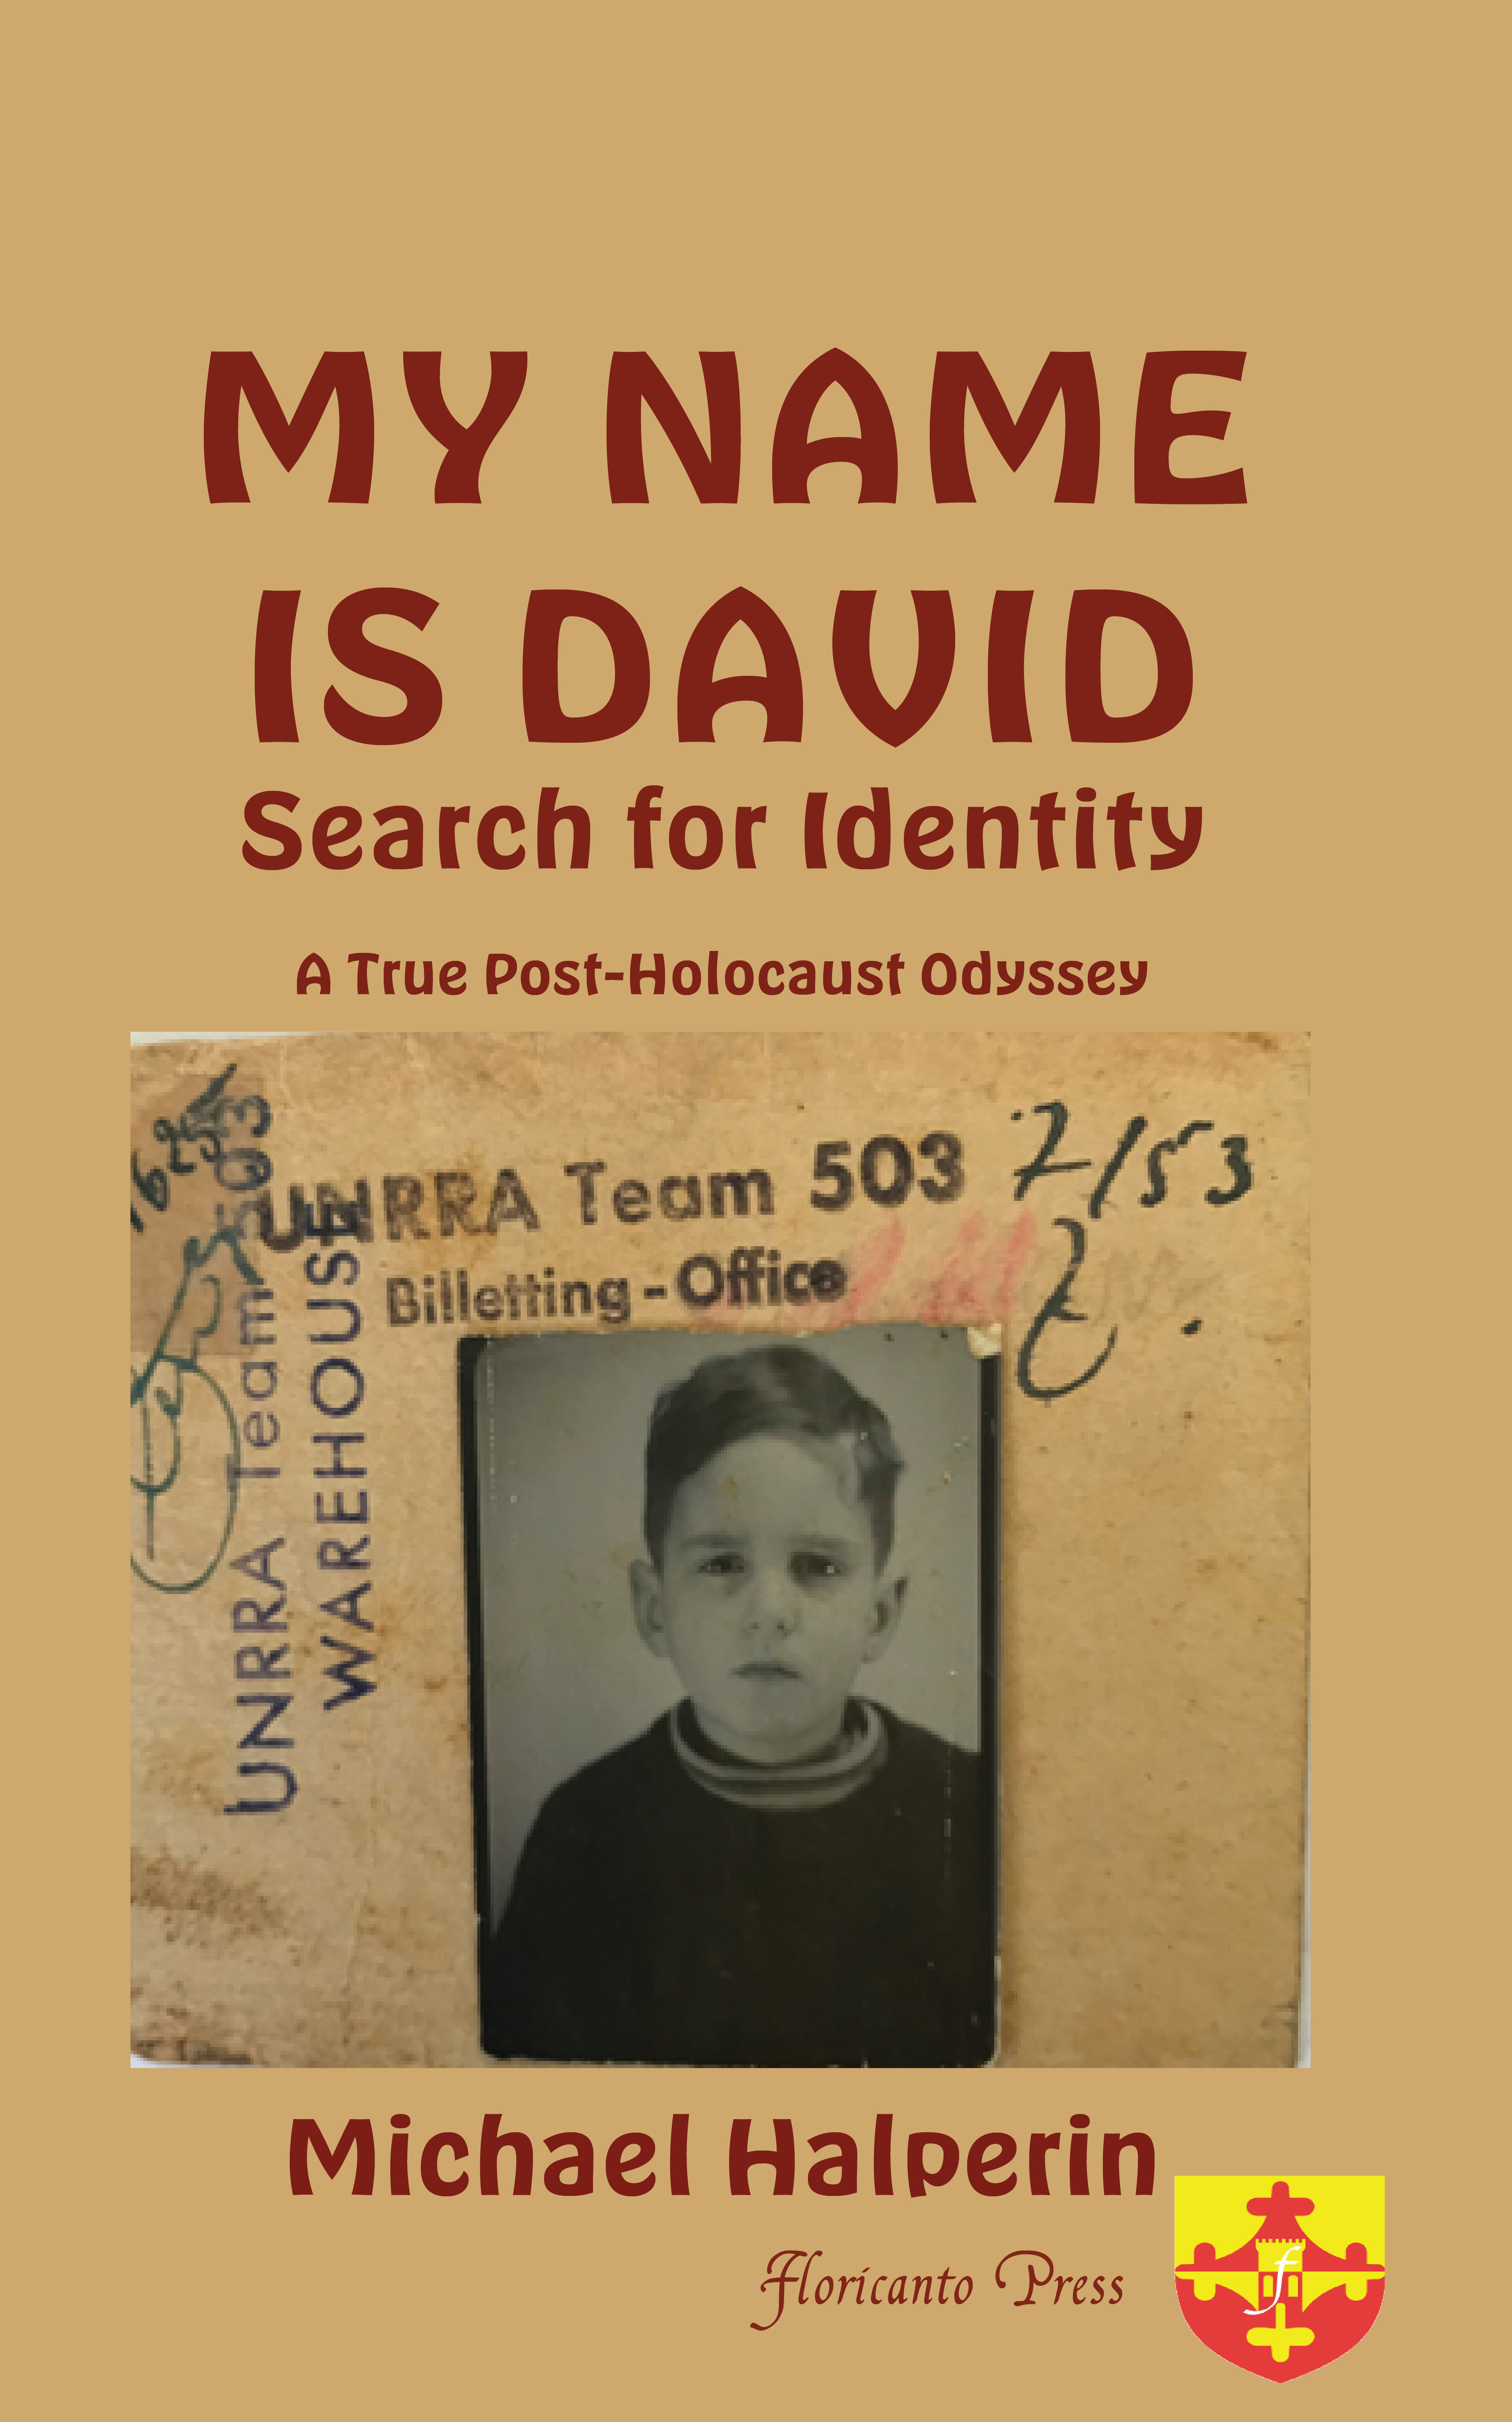 My Name Is David Search for Identity  A True Post-Holocaust Odyssey. By Michael Halperin